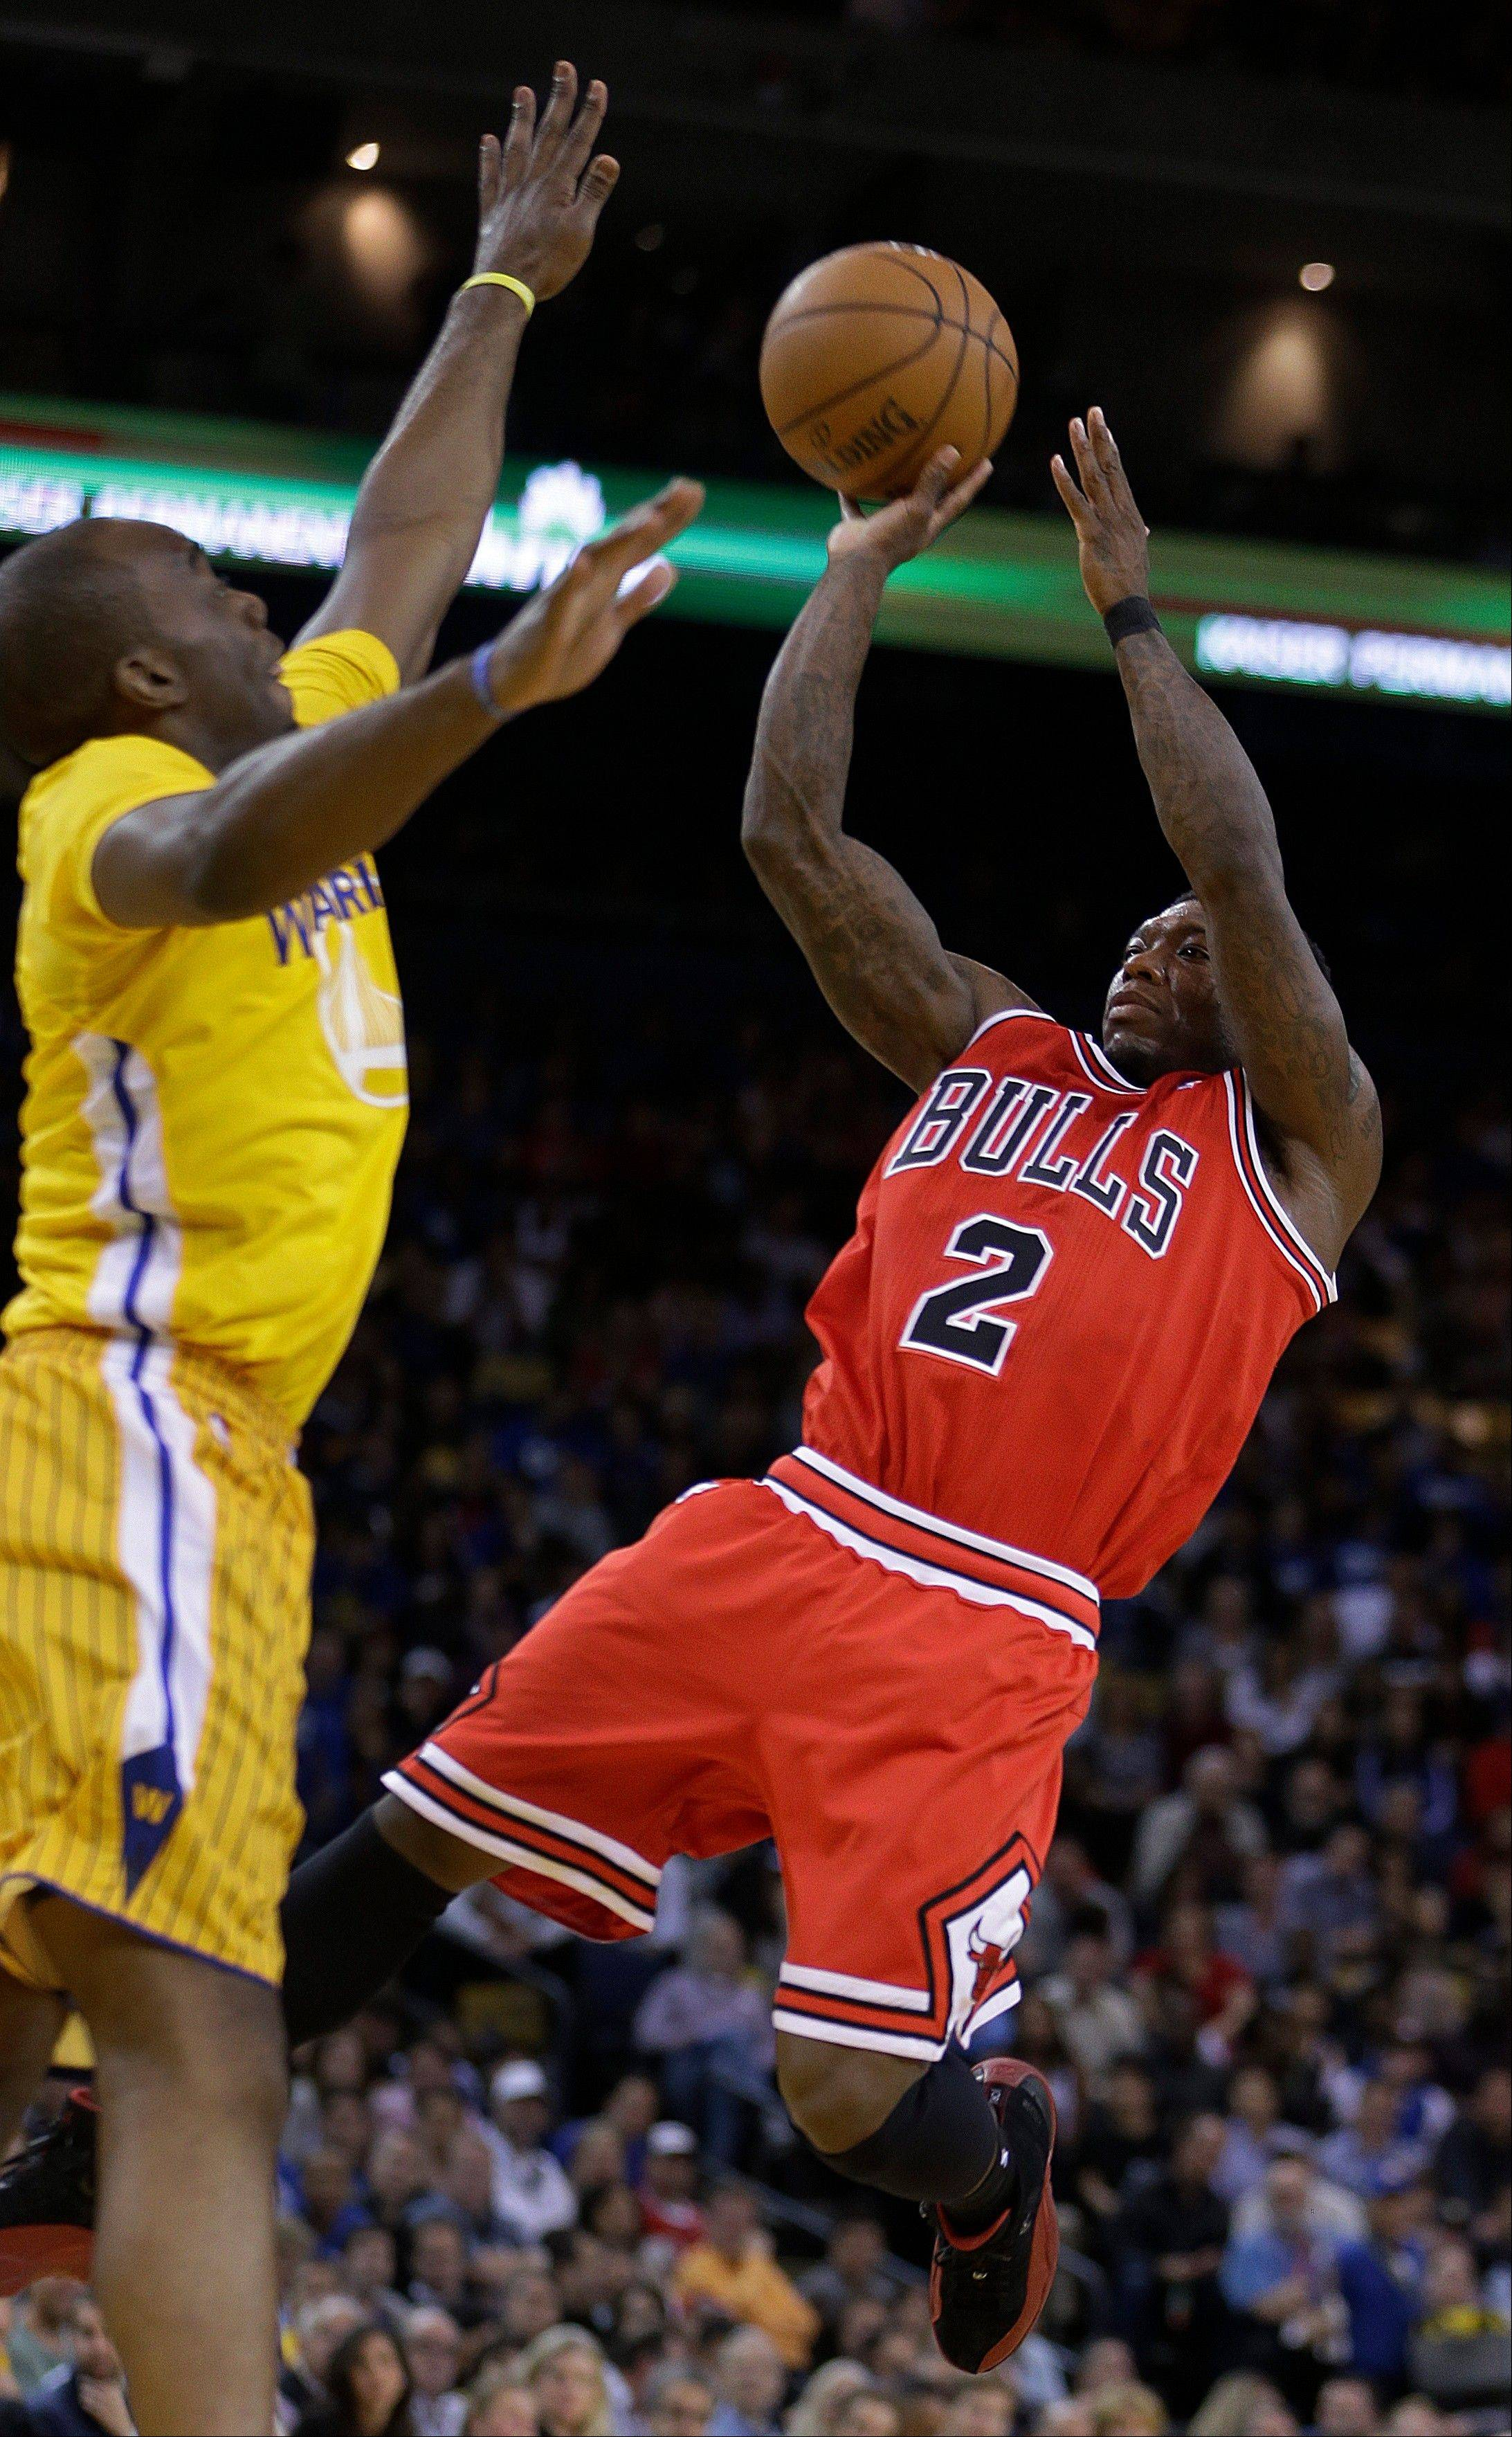 Chicago Bulls' Nate Robinson, right, shoots against Golden State Warriors' Carl Landry during the first half of an NBA basketball game Friday, March 15, 2013, in Oakland, Calif. (AP Photo/Ben Margot)